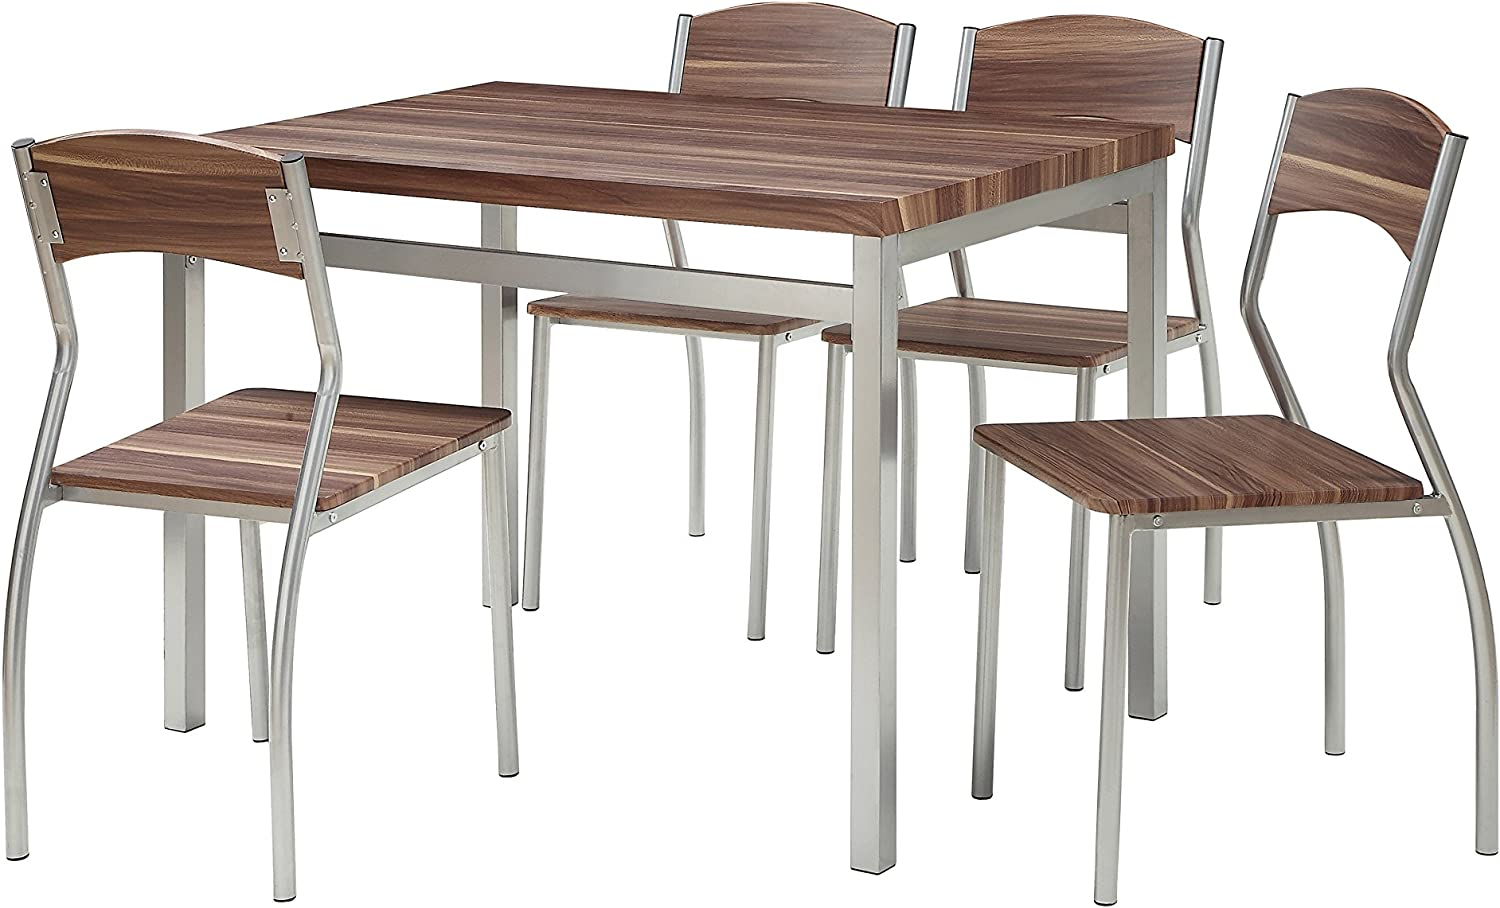 Abington Lane 5-Piece Dining Table Set with 4 Chairs - Modern and Sleek Dinette (Cedarwood Finish)